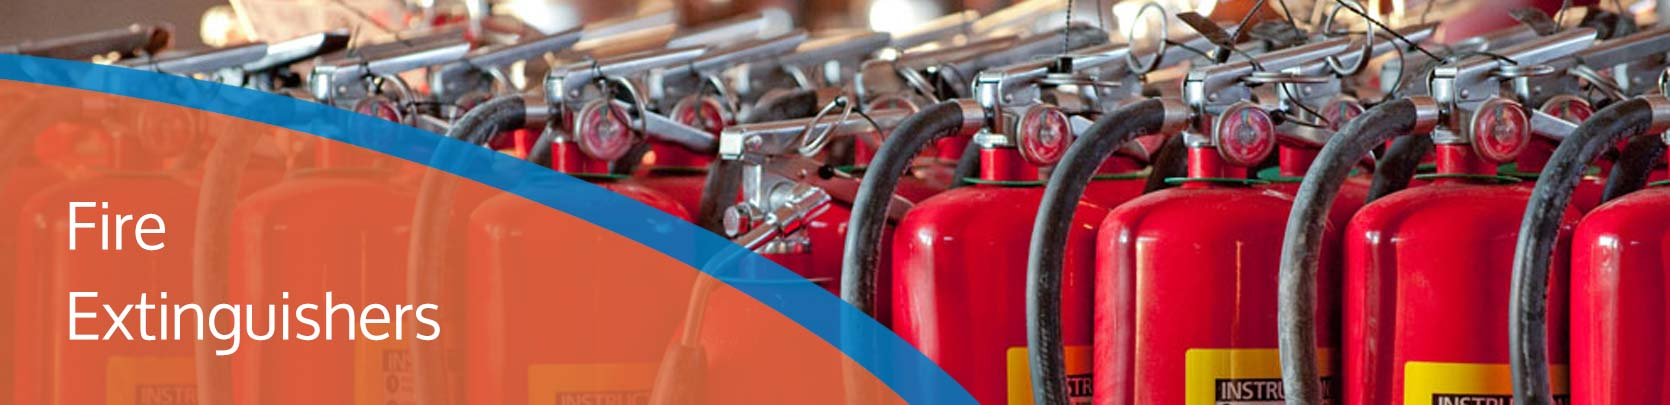 fire extinguishers hero image for mi fire protection services